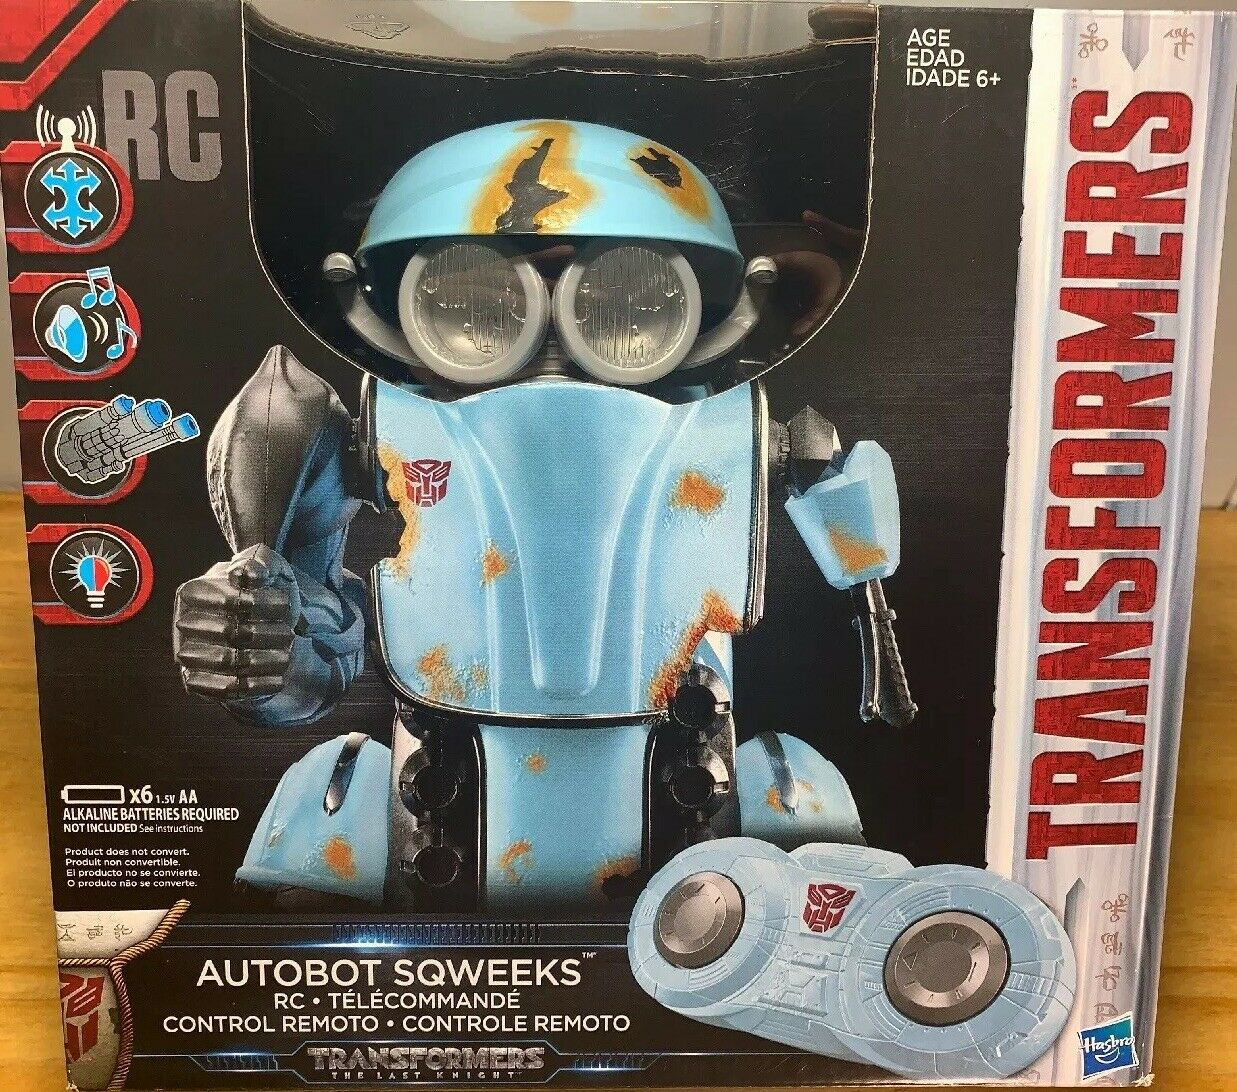 Transformers The Last Knight Rc Autobot Sqweeks Hasbro Ages 6+ Remote Control